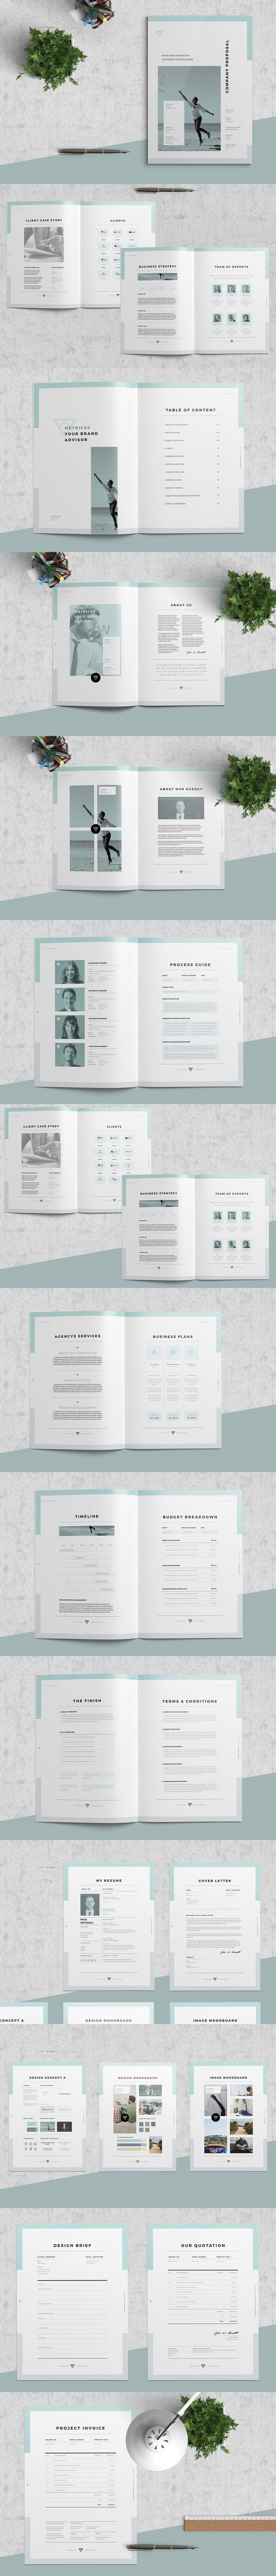 Clean And Professional Proposal Template InDesign INDD